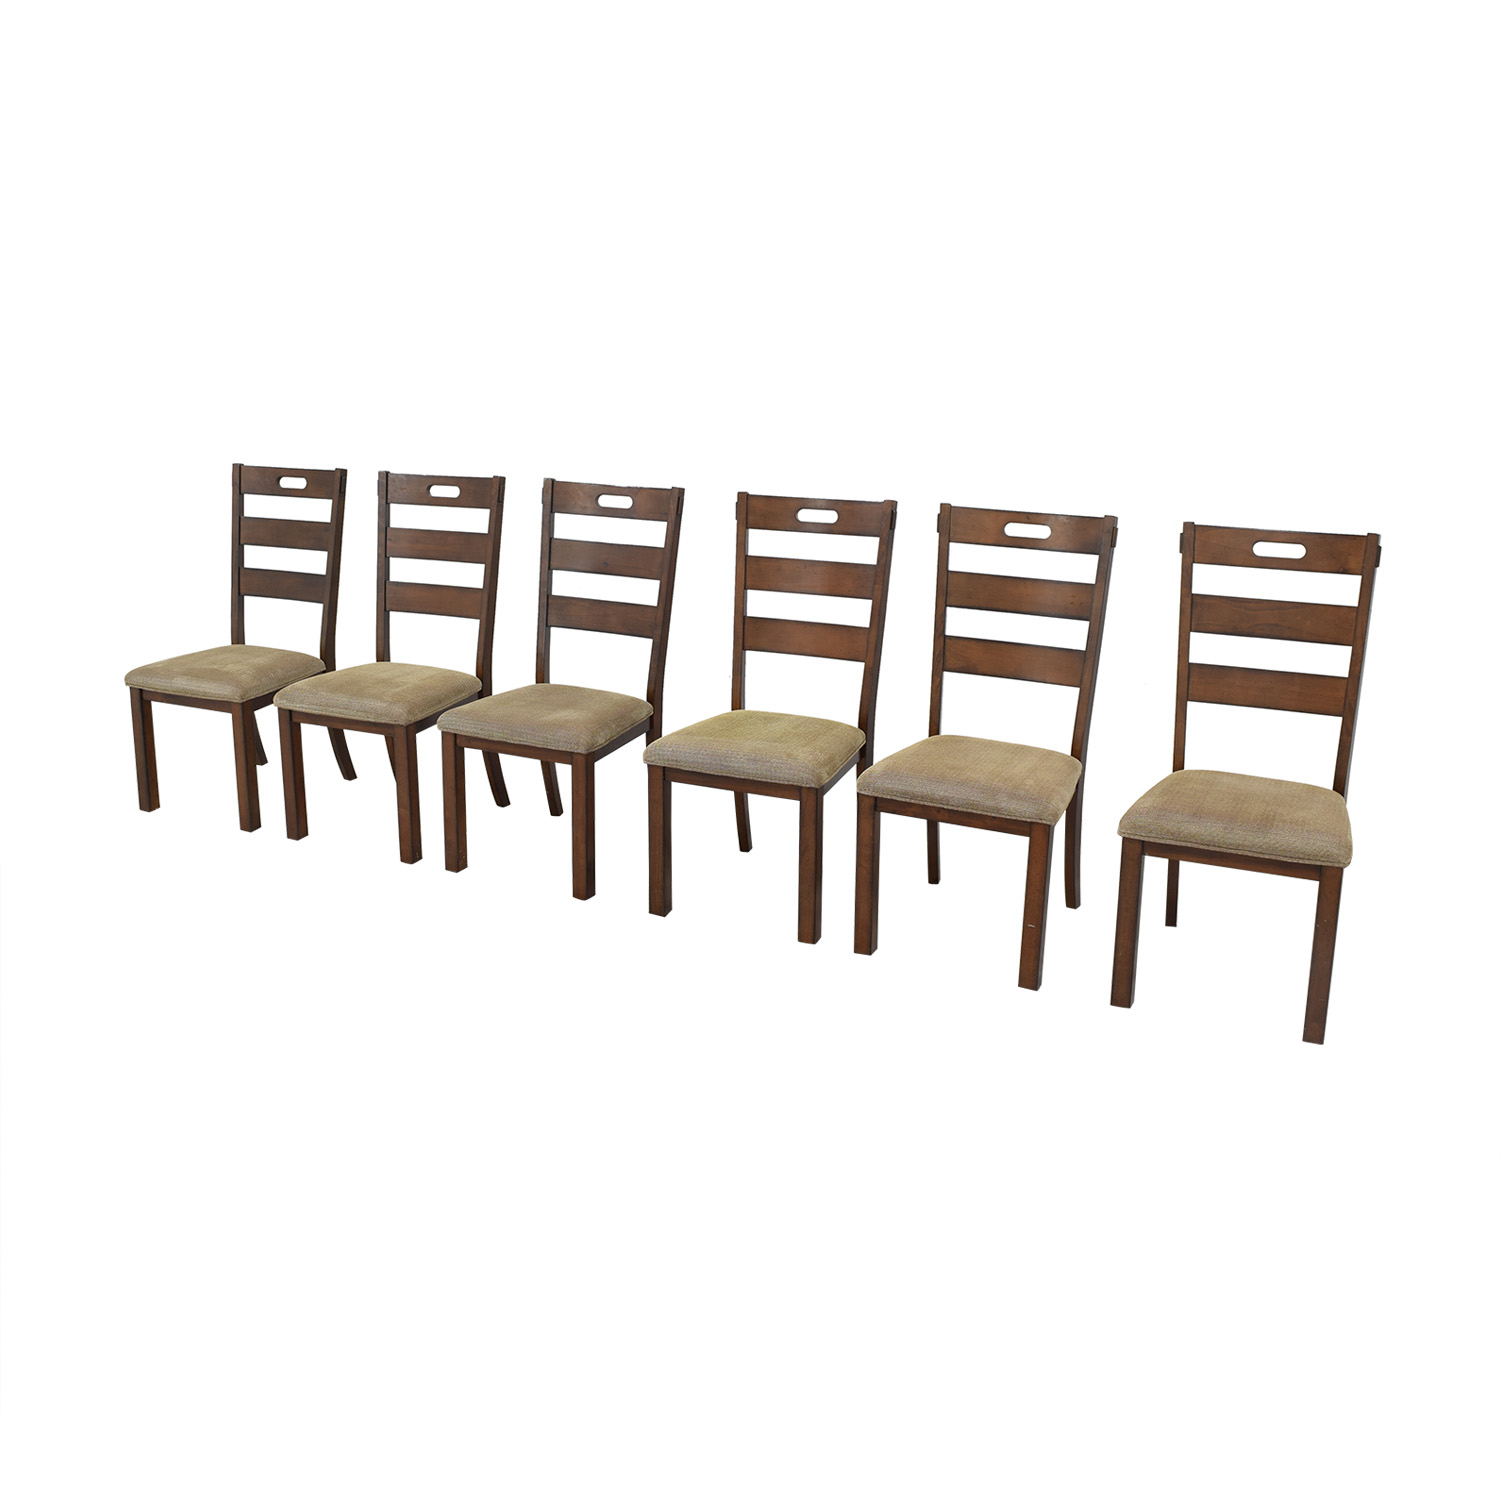 Wayfair Wayfair Ladder Back Upholstered Dining Chairs for sale